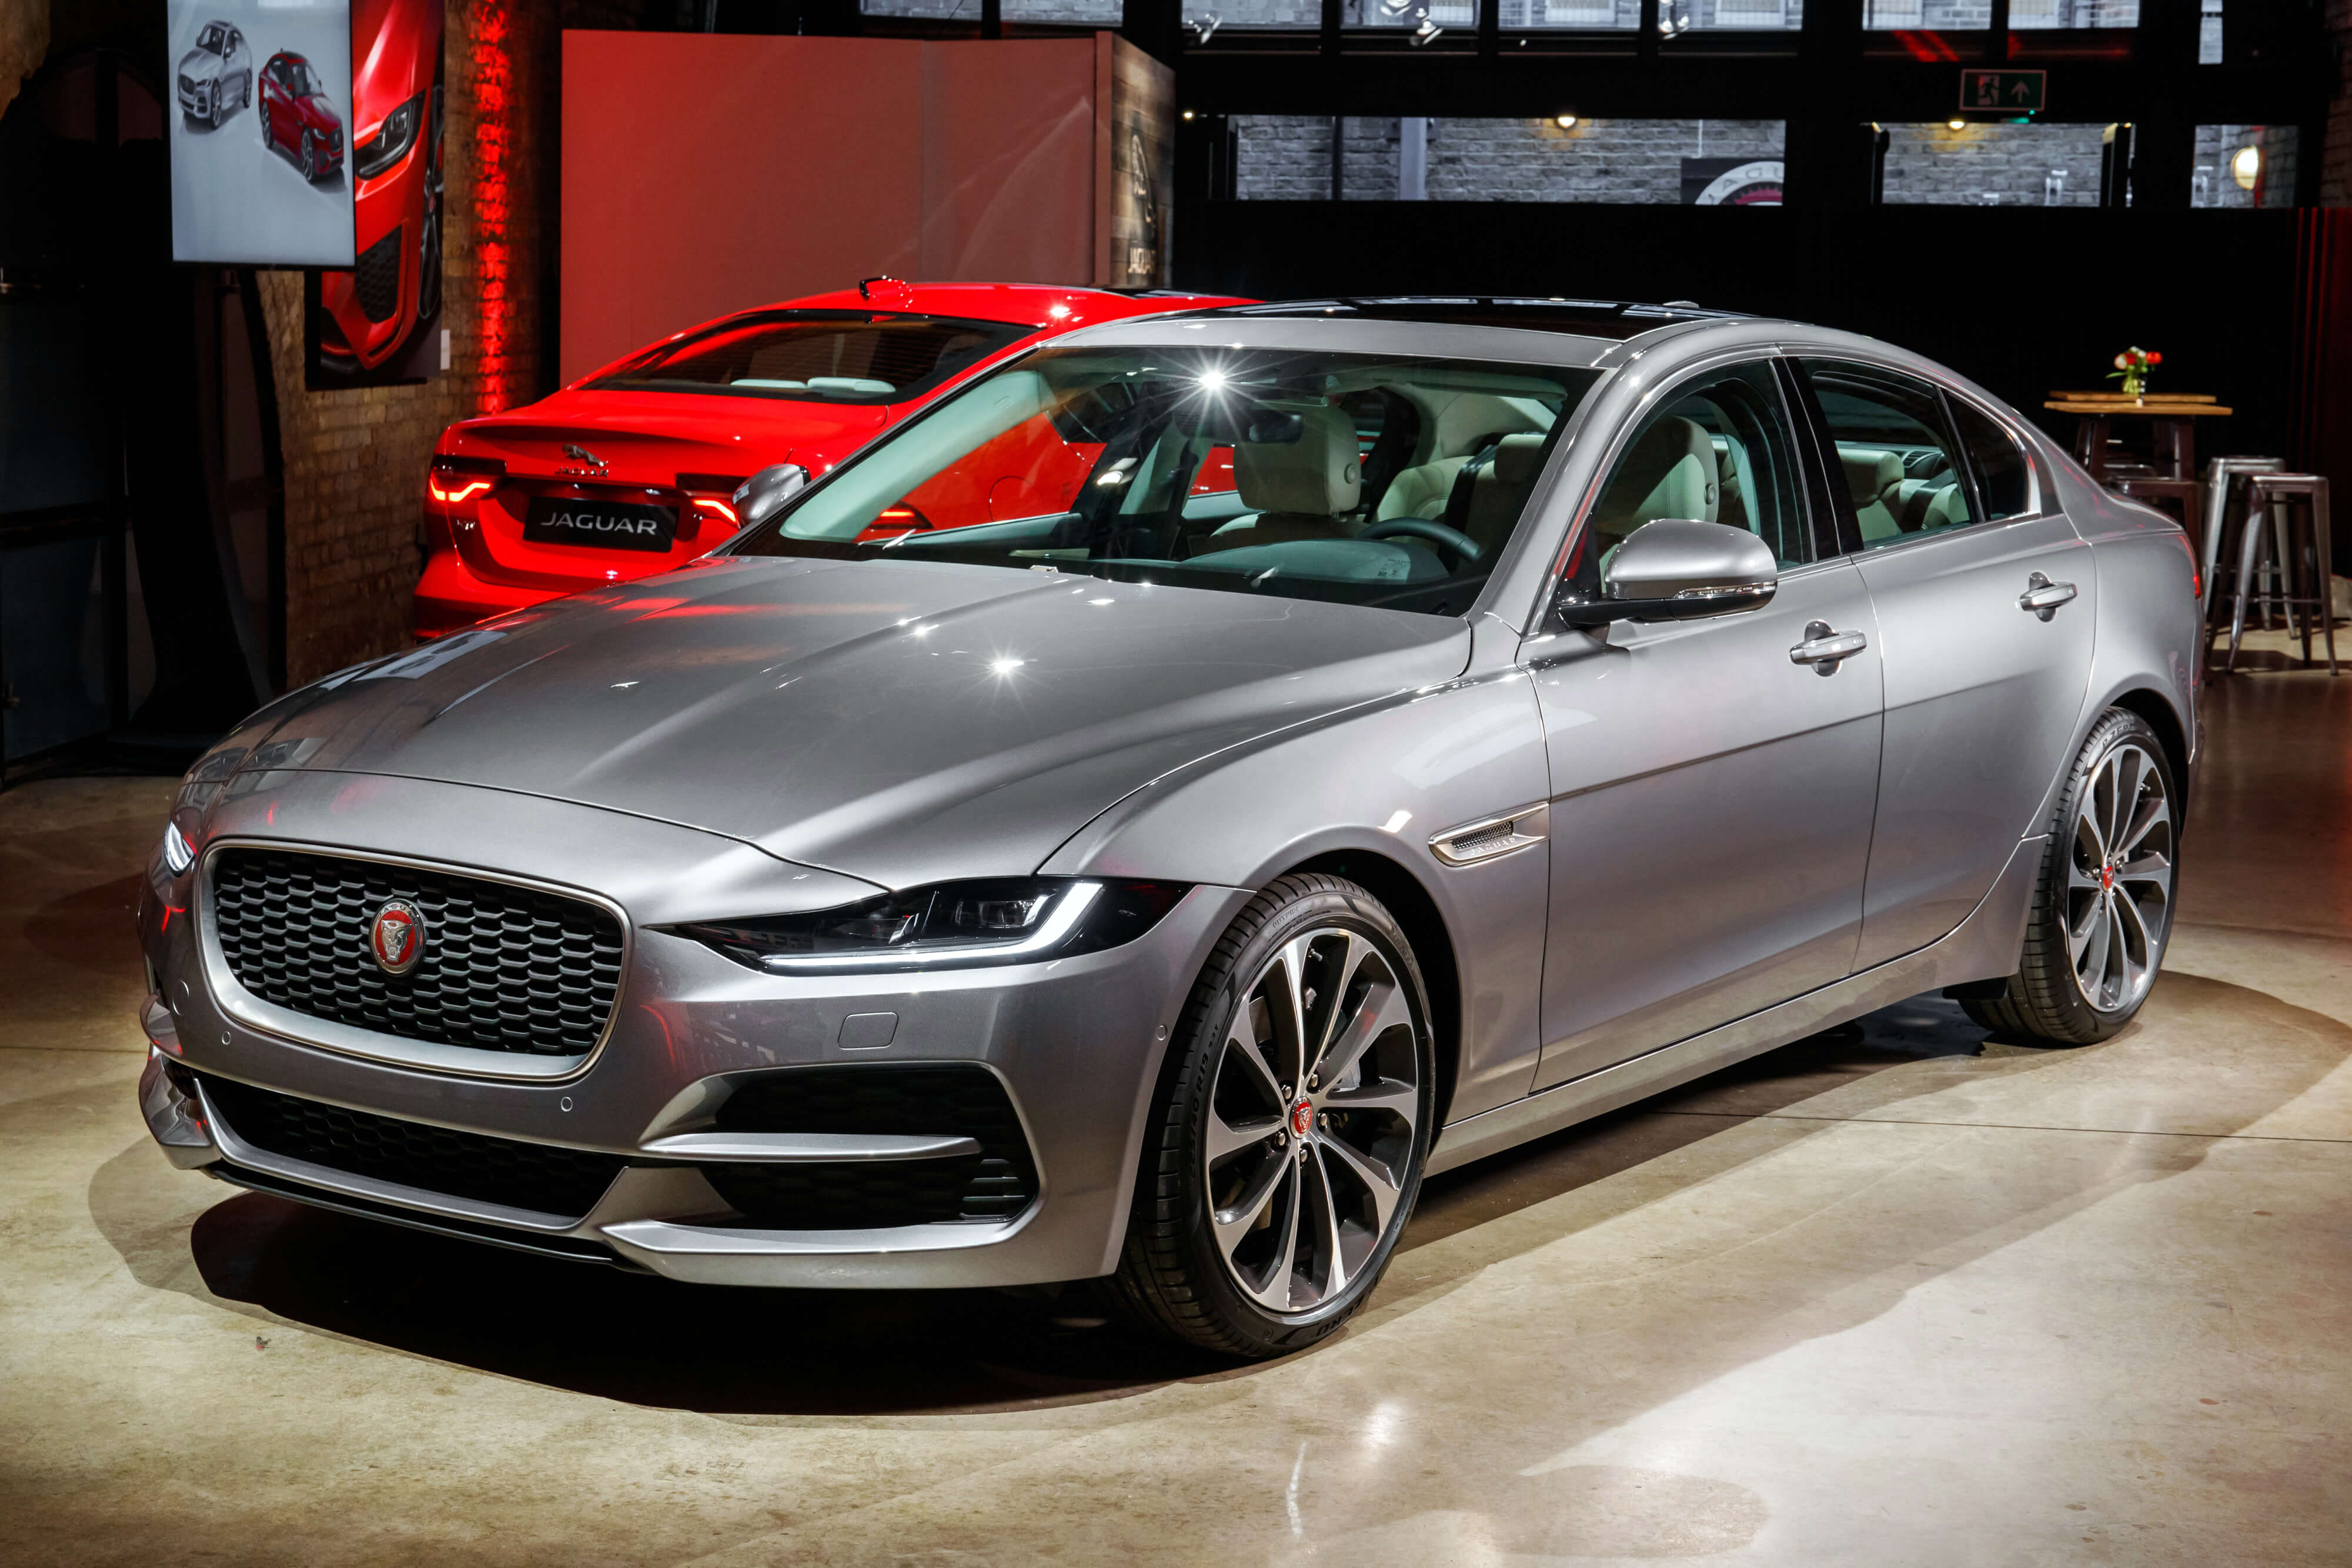 2020 Jaguar Xe Sedan Rumors